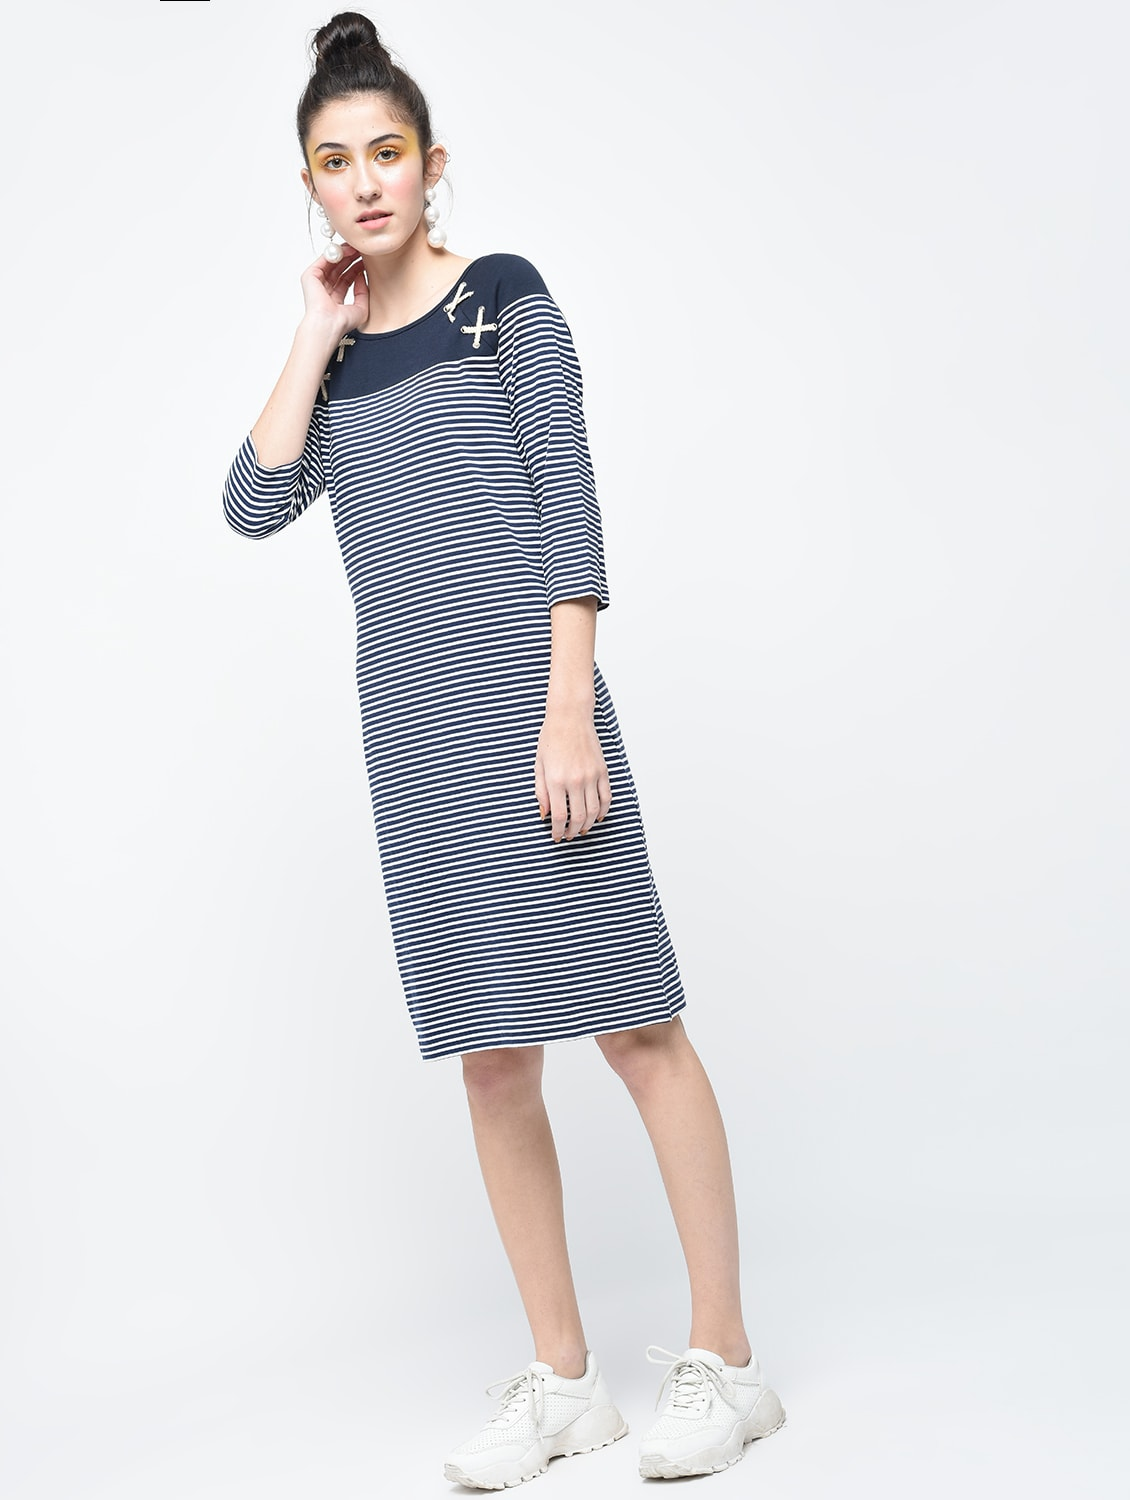 40afddc44b Buy Navy Blue Striped Cotton Dress for Women from Marie Lucent for ₹787 at  45% off